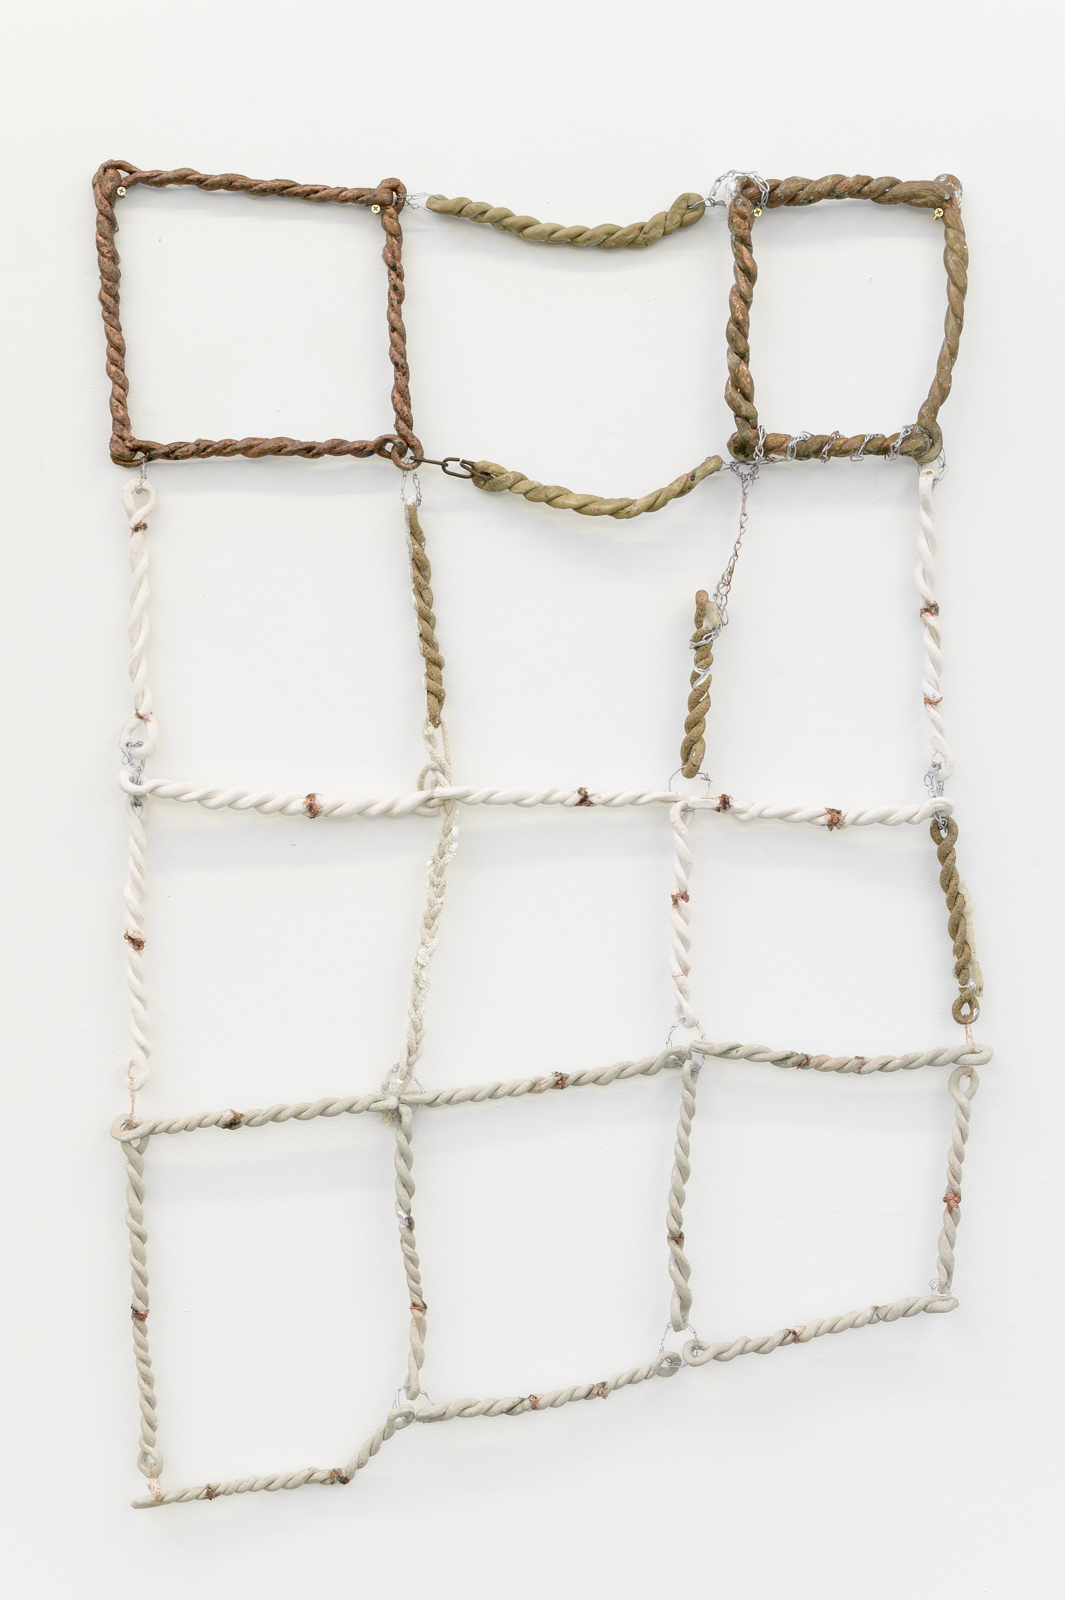 Jordan Mitchell-Fletcher,  Untitled (Chain 1) , 2019, ceramic, porcelain clay, rope, wire, copper powder patina, Plastimake and found chain, 117×79cm.  Image: Aaron Christopher Rees